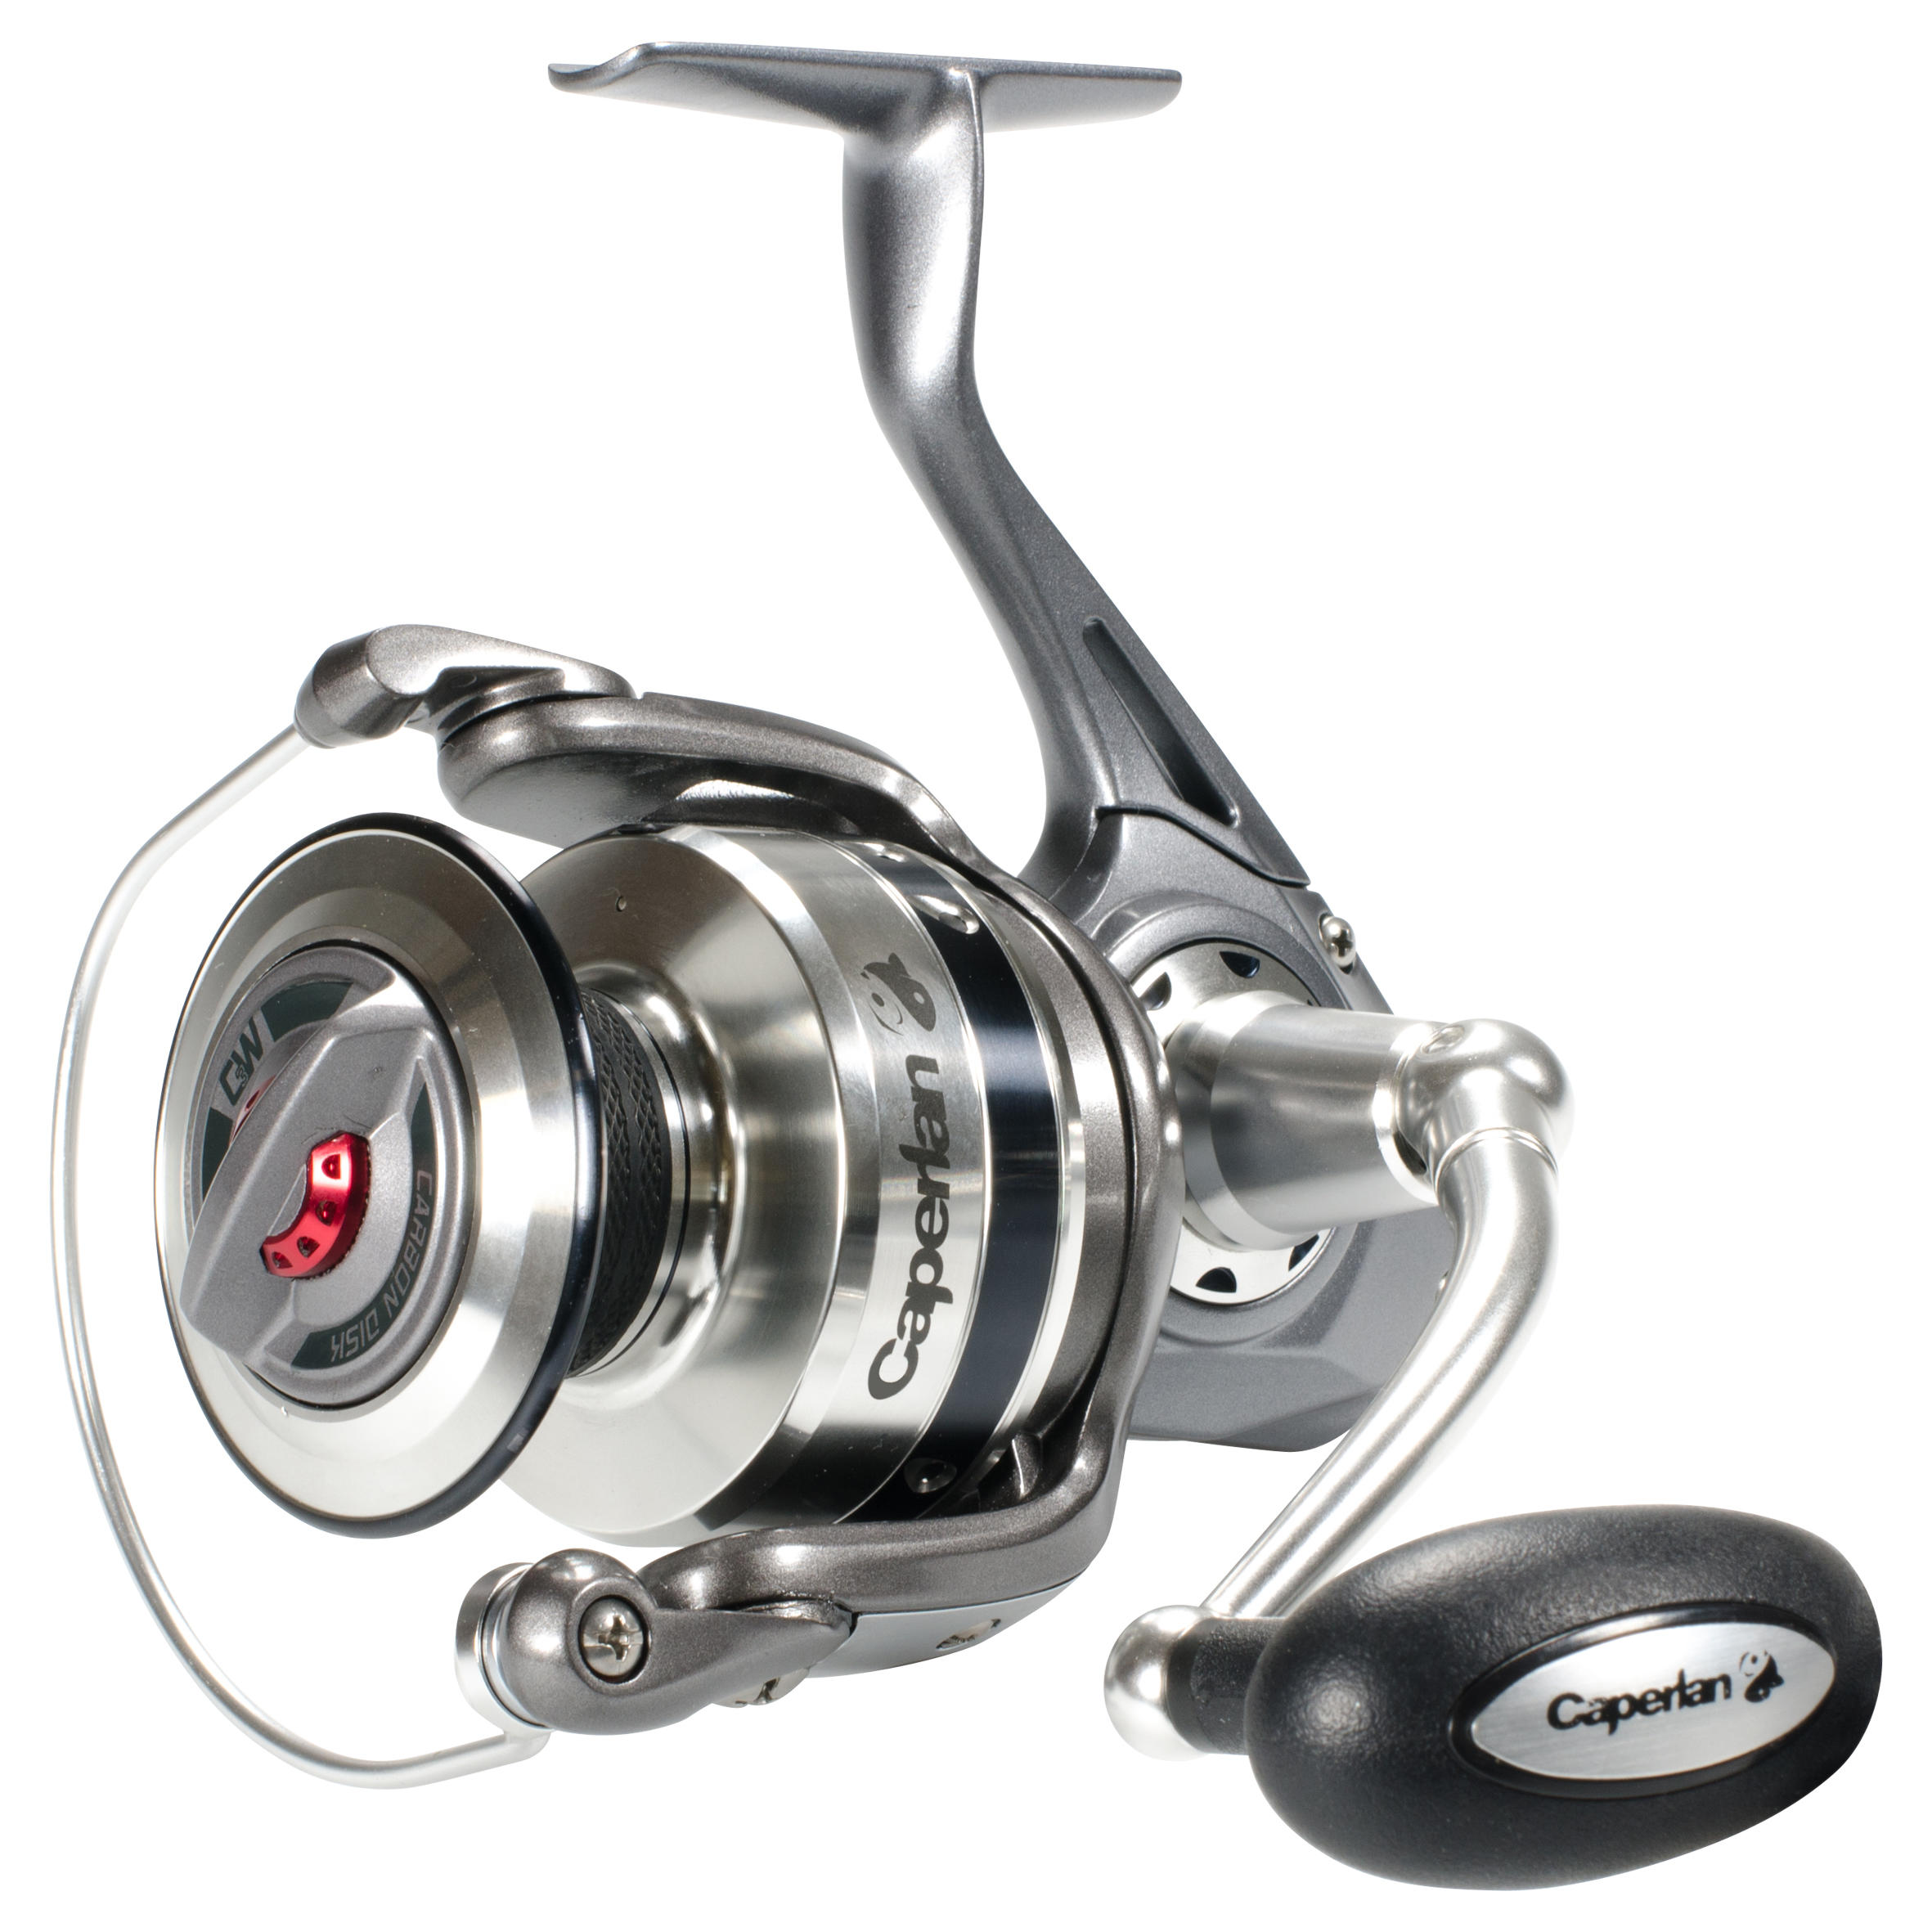 KHAOS 7000 heavy sea fishing reel